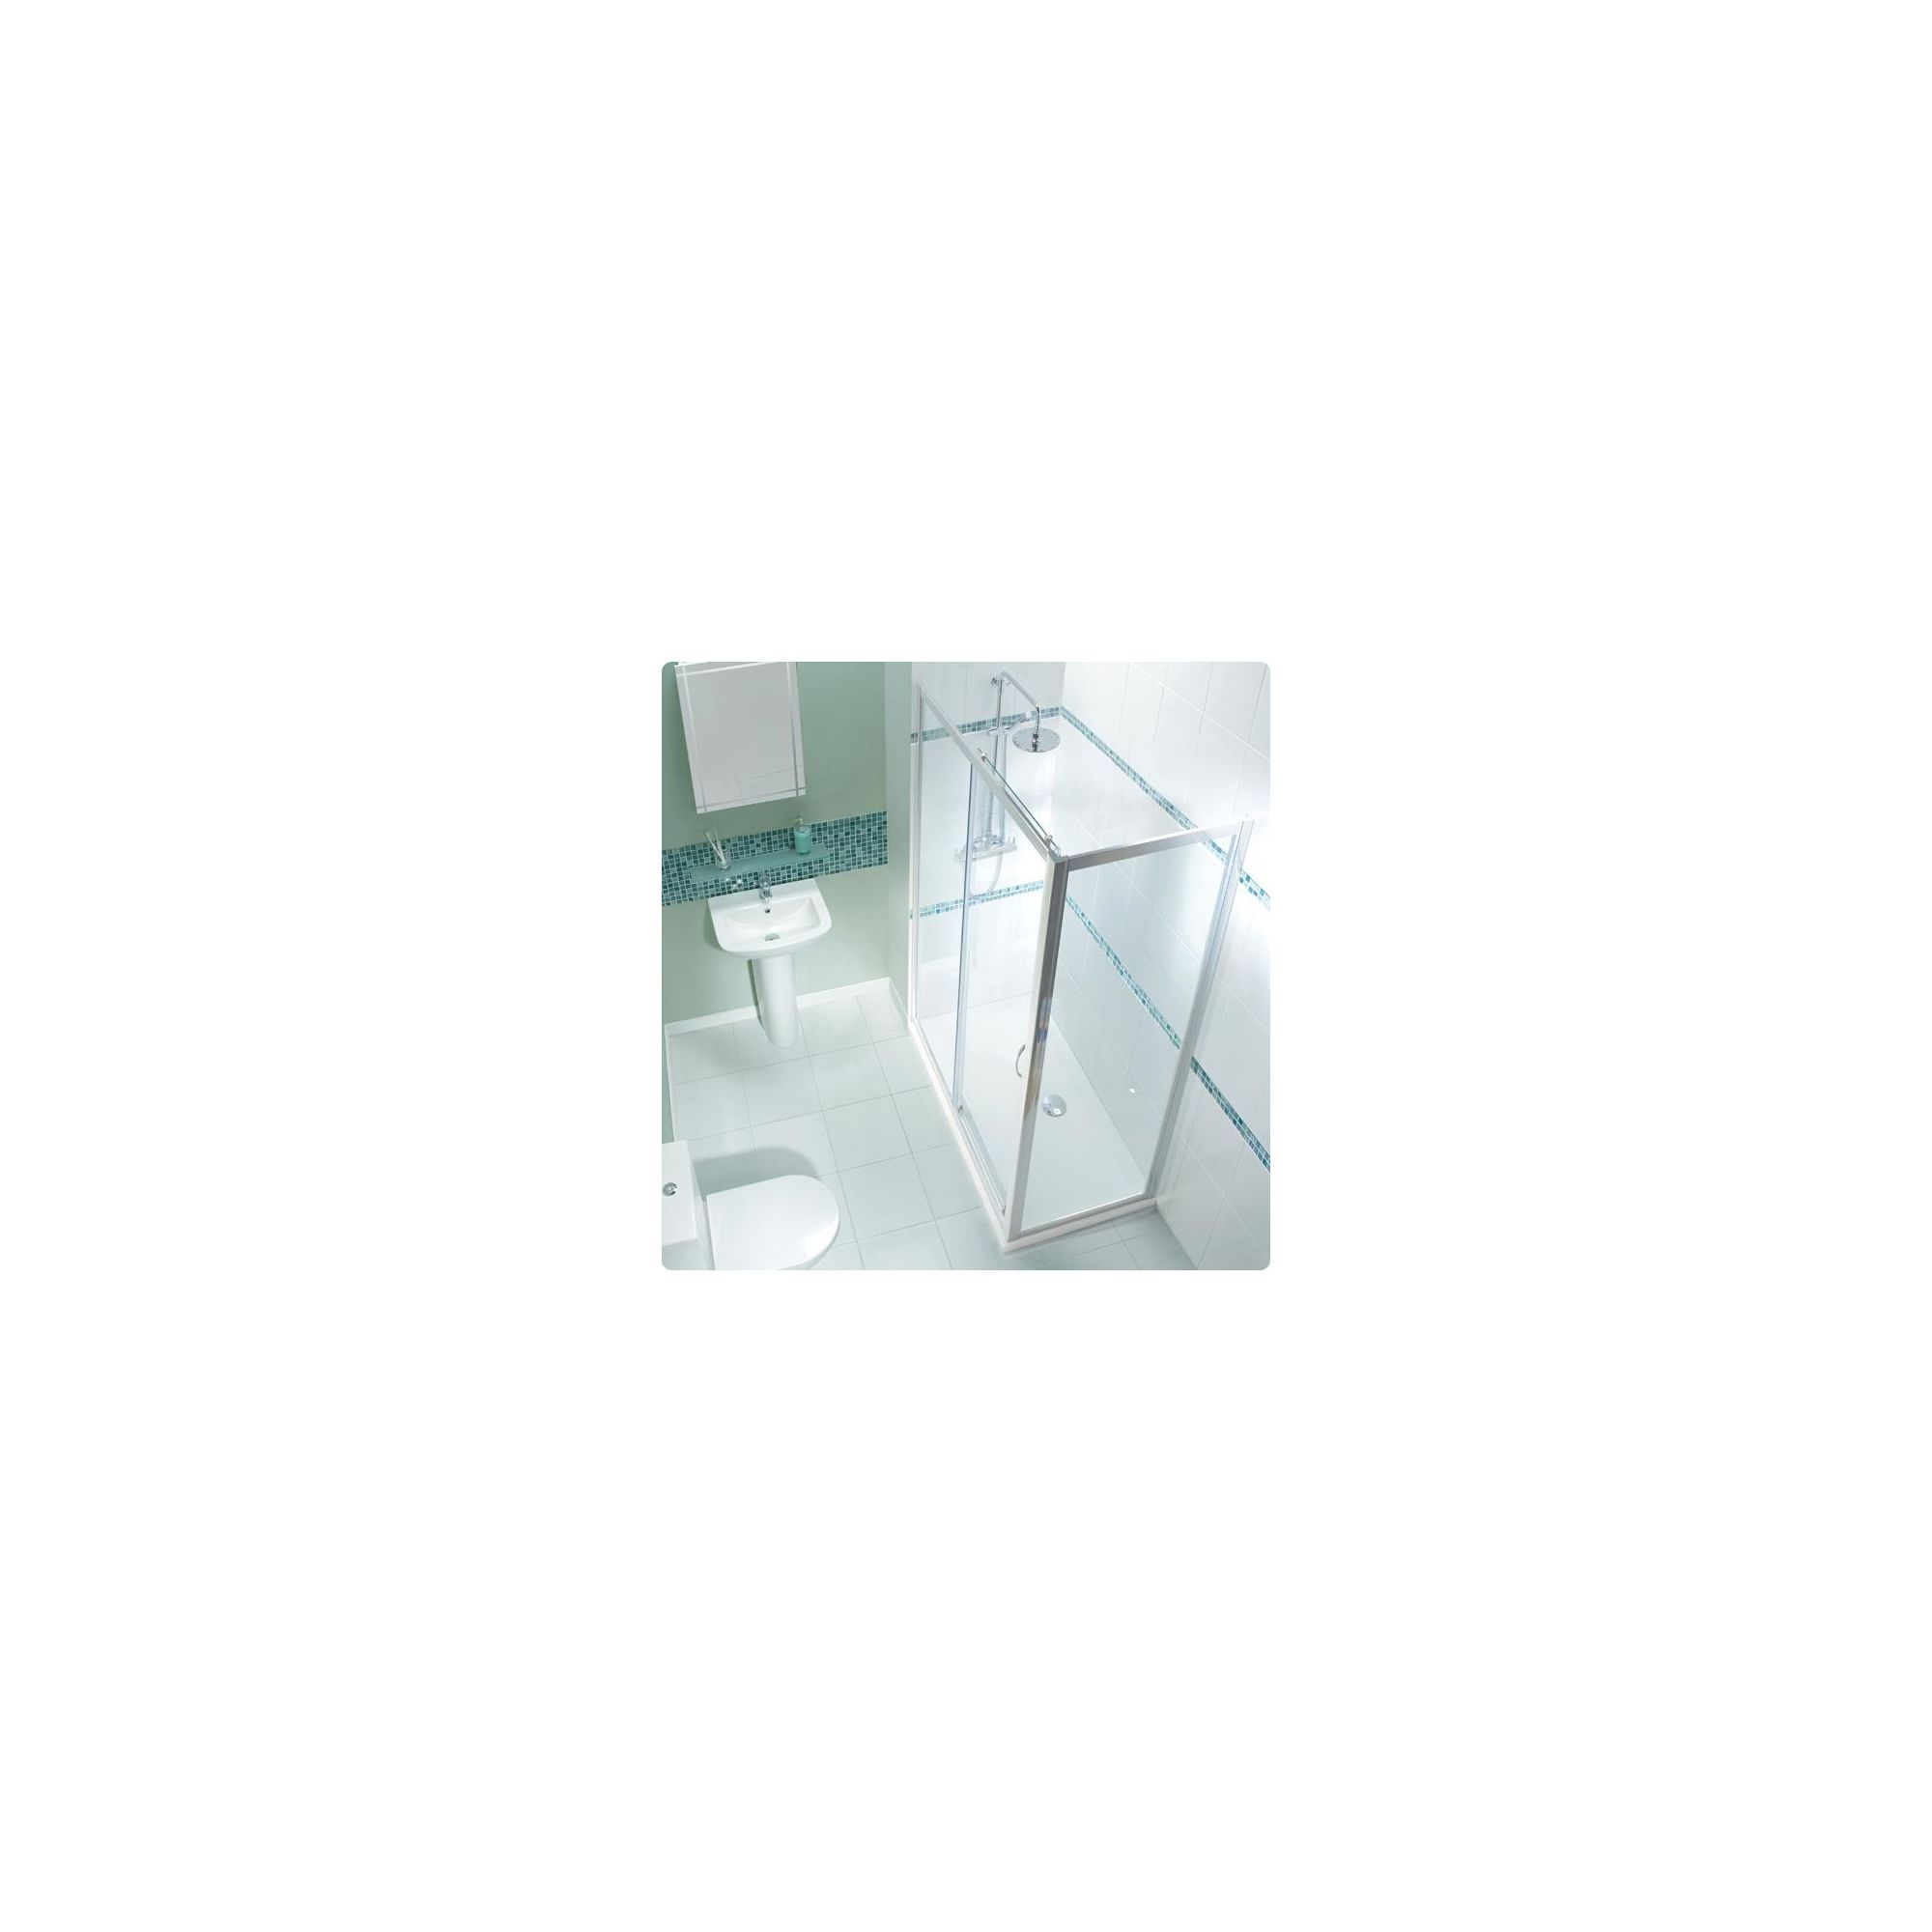 Balterley Framed Sliding Shower Enclosure, 1200mm x 900mm, Low Profile Tray, 6mm Glass at Tesco Direct